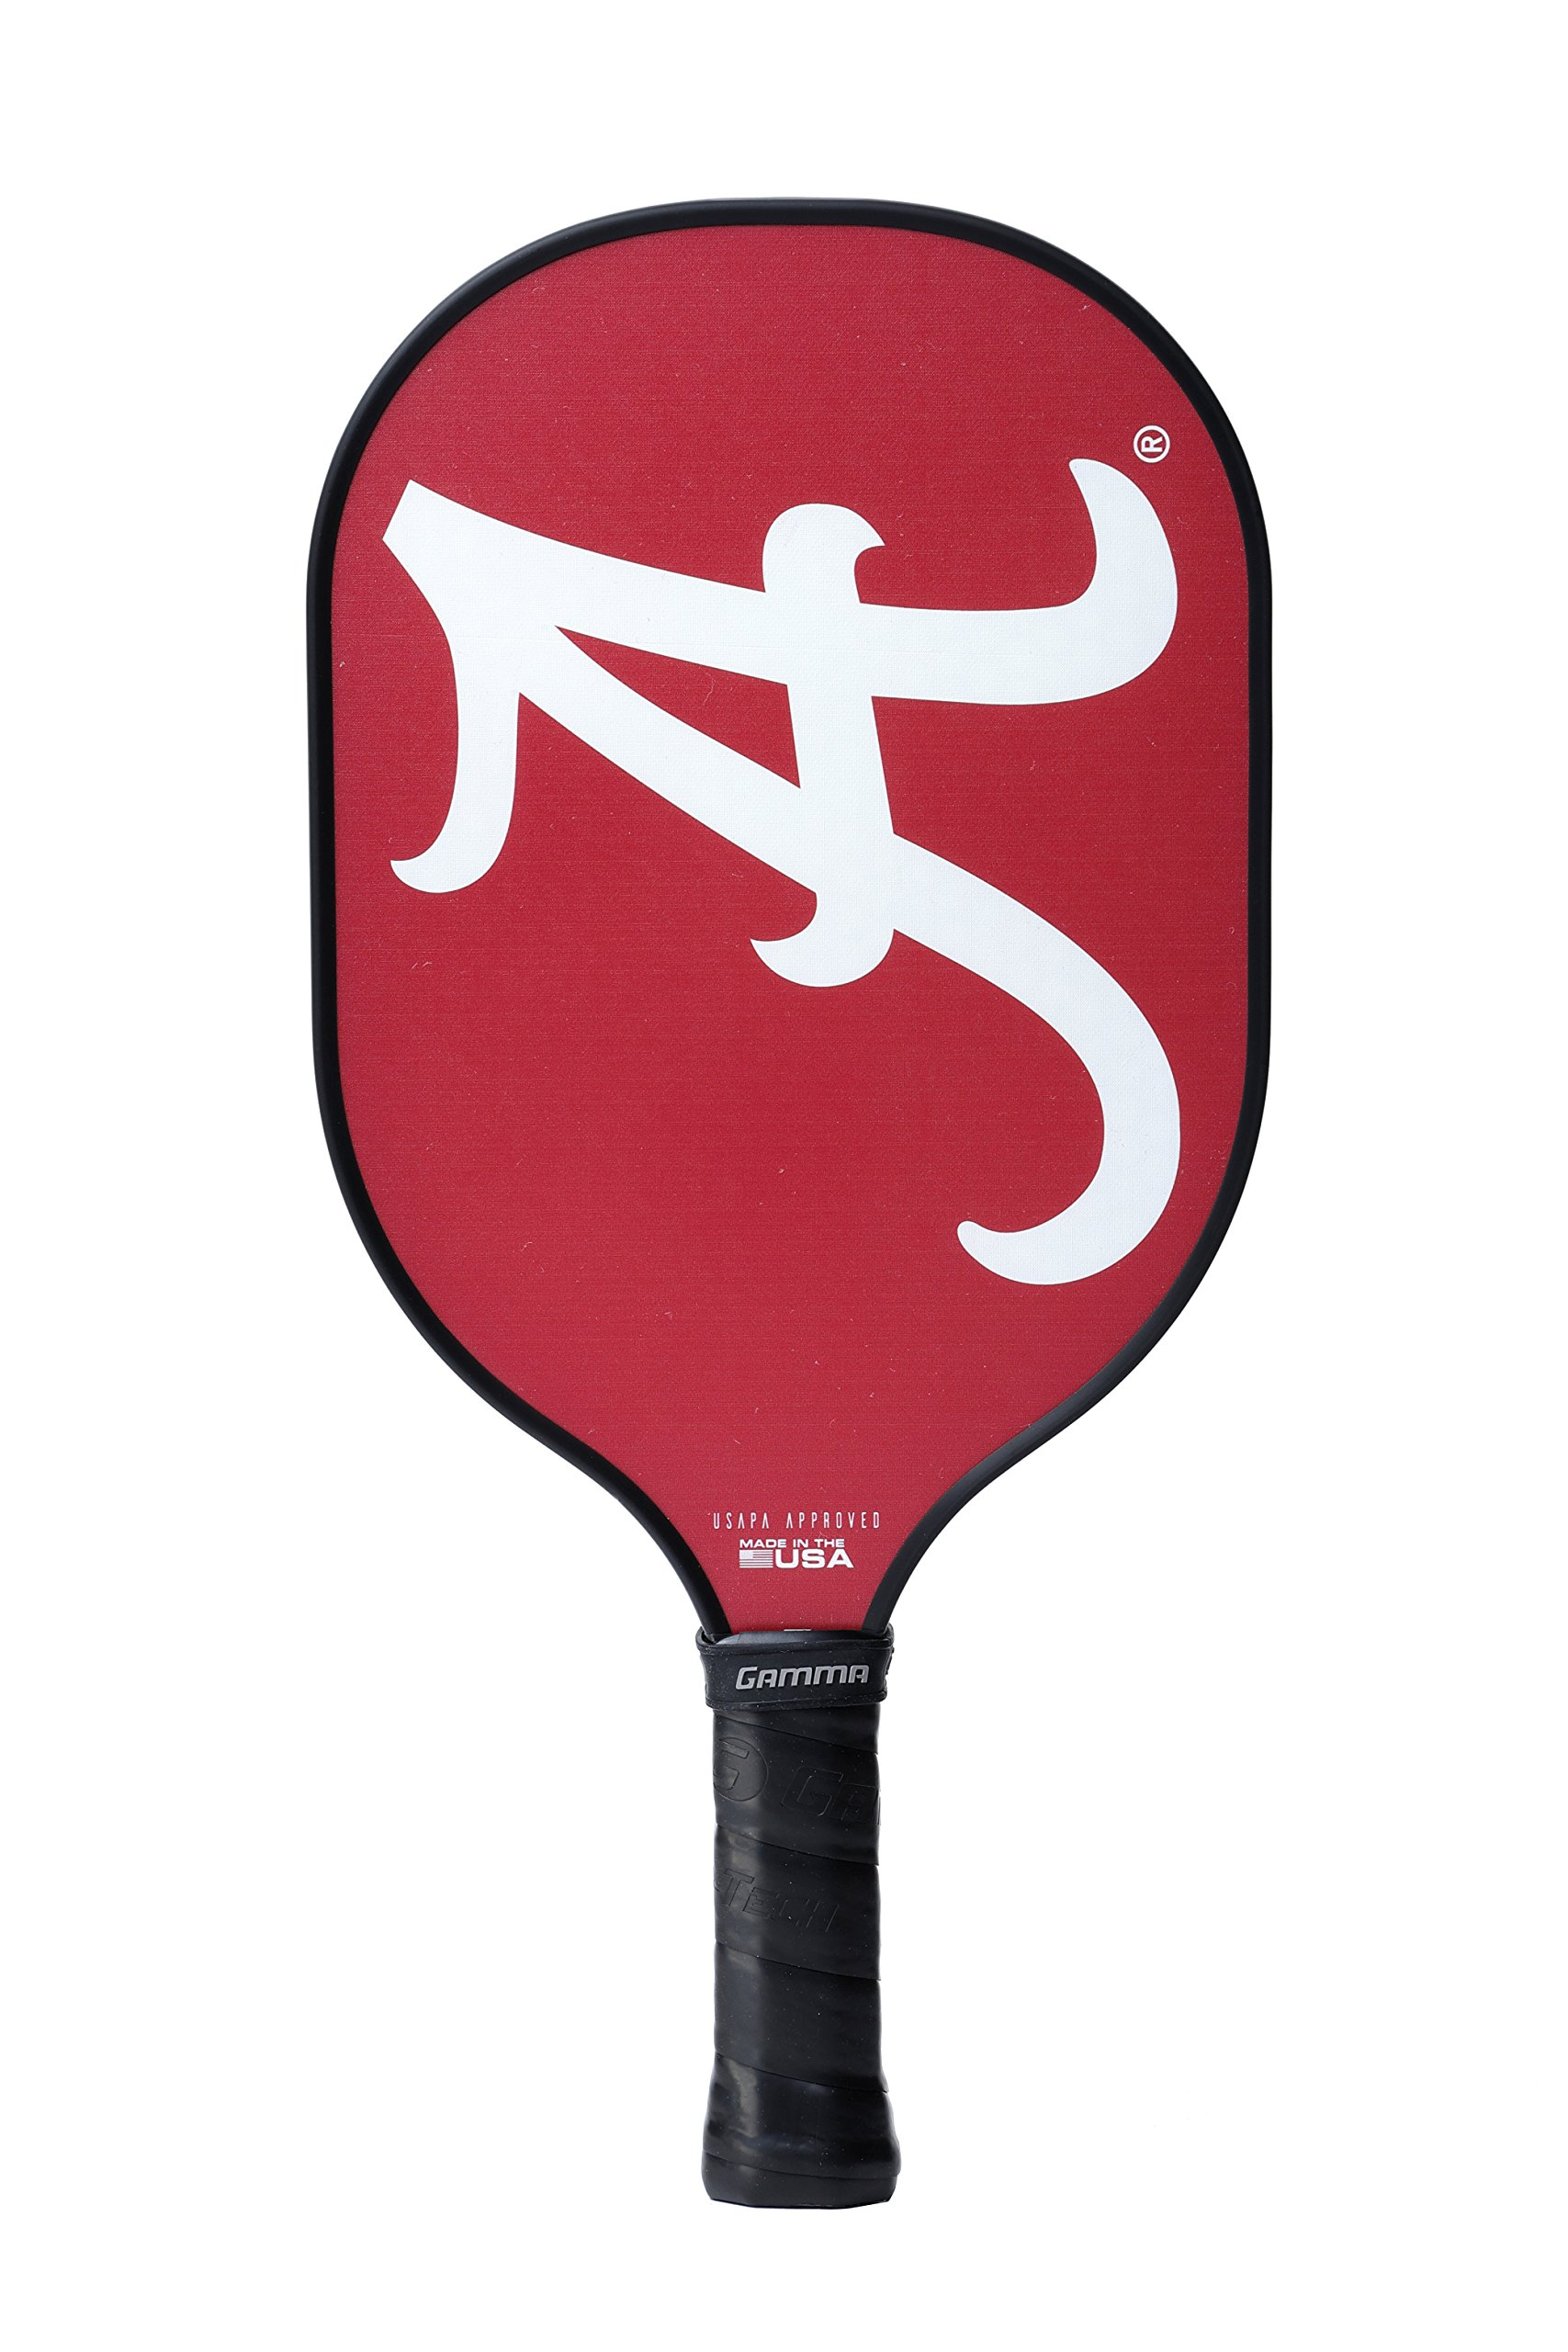 Gamma Collegiate Twister Composite Pickleball Paddle: Pickle Ball Paddles for Indoor & Outdoor Play - USAPA Approved Racquet for Adults & Kids - Alabama Crimson Tide by Gamma (Image #3)